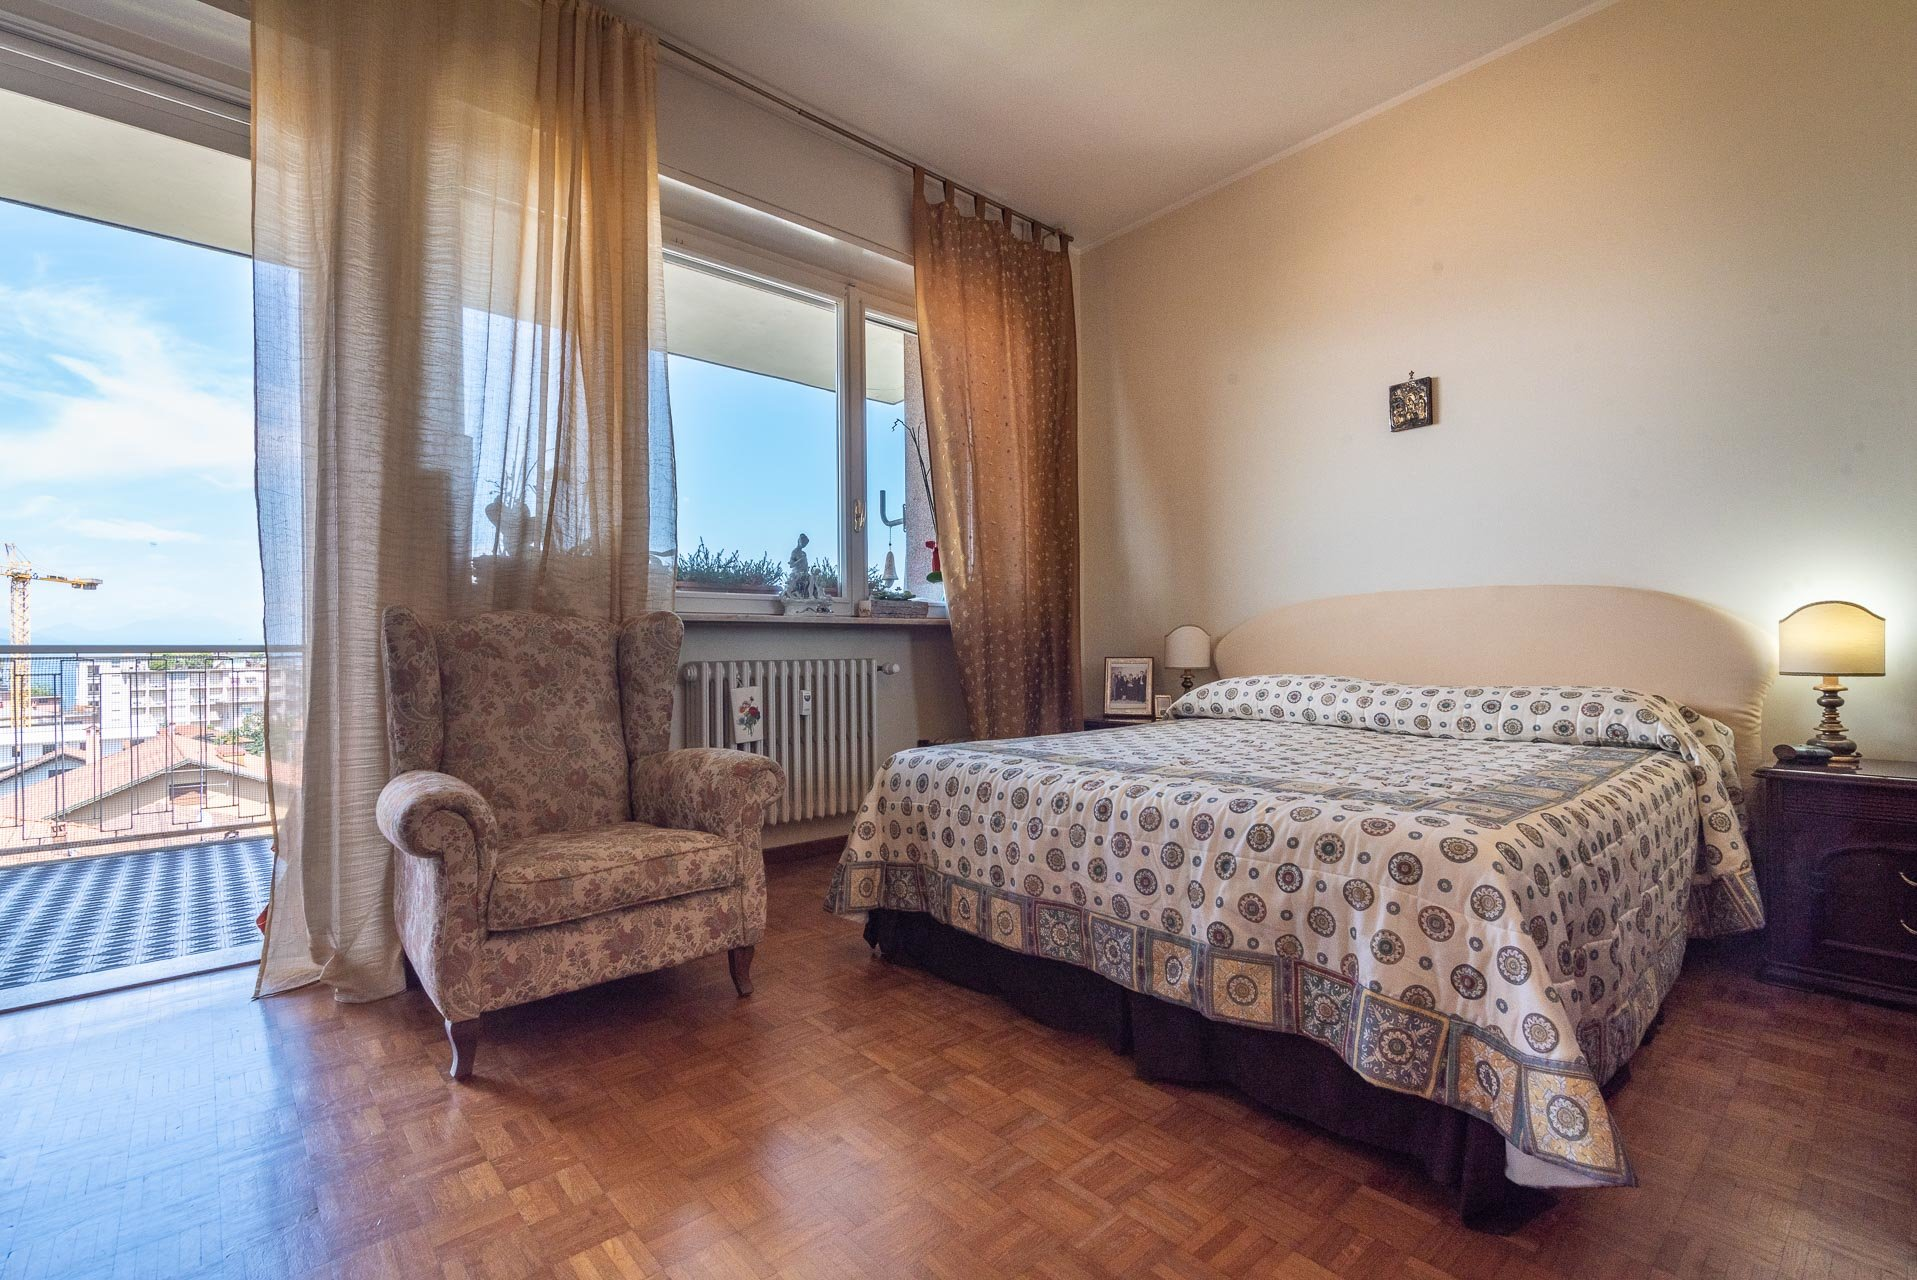 Apartment for sale in Stresa centre - bedroom with a view